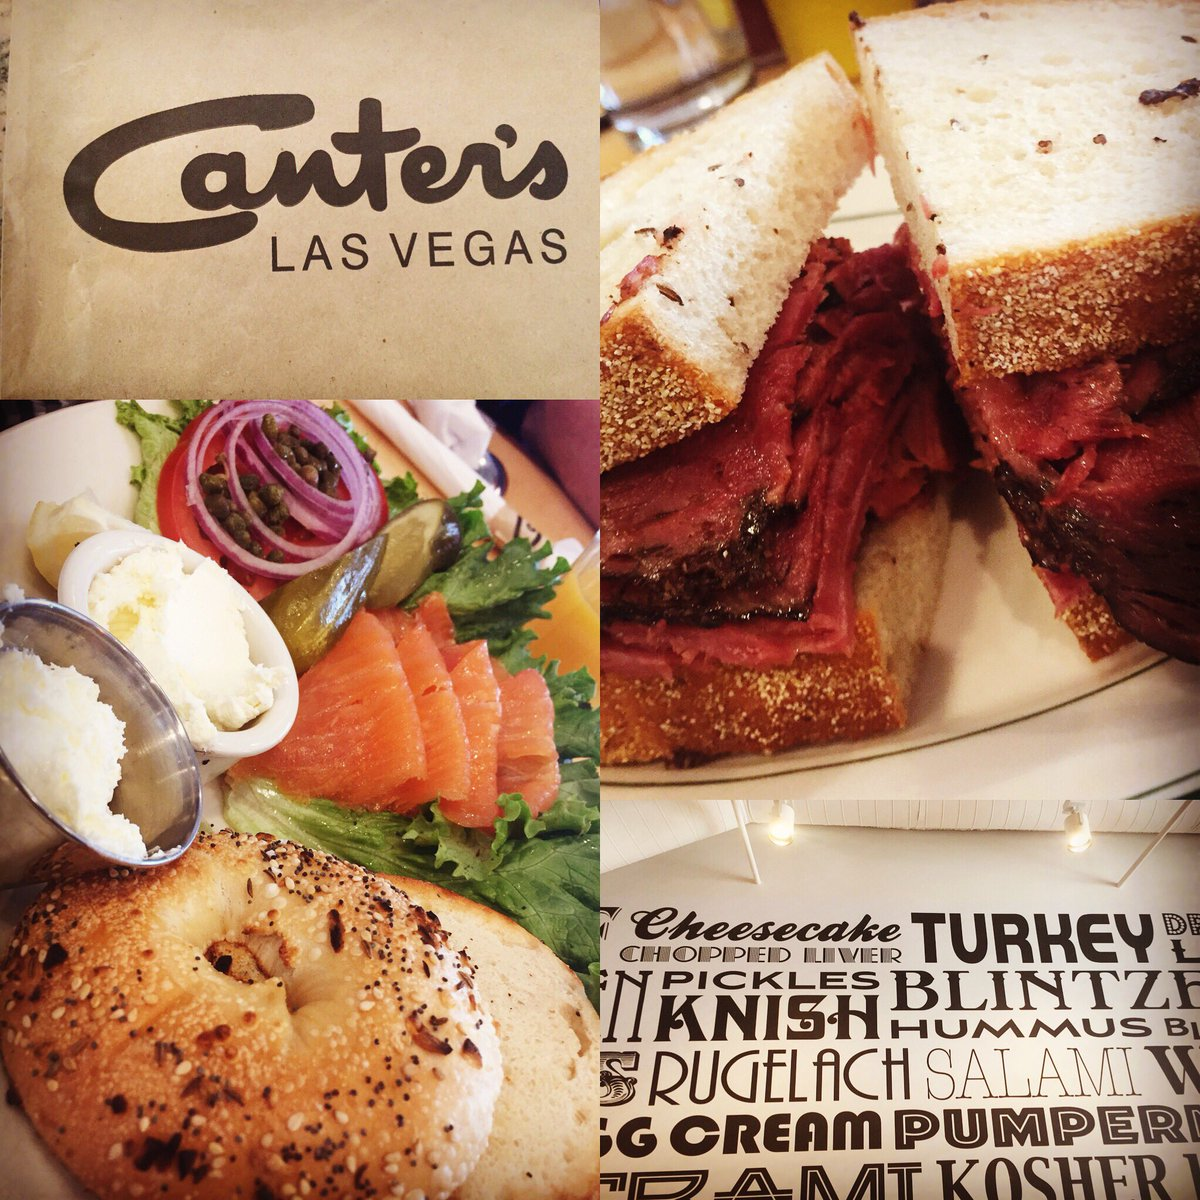 Such a great way to celebrate my parent's 25 Anniversary @cantersdeli @tivolivillagelv #Mazel #OyVey #Deelish <br>http://pic.twitter.com/49DGM57RYT